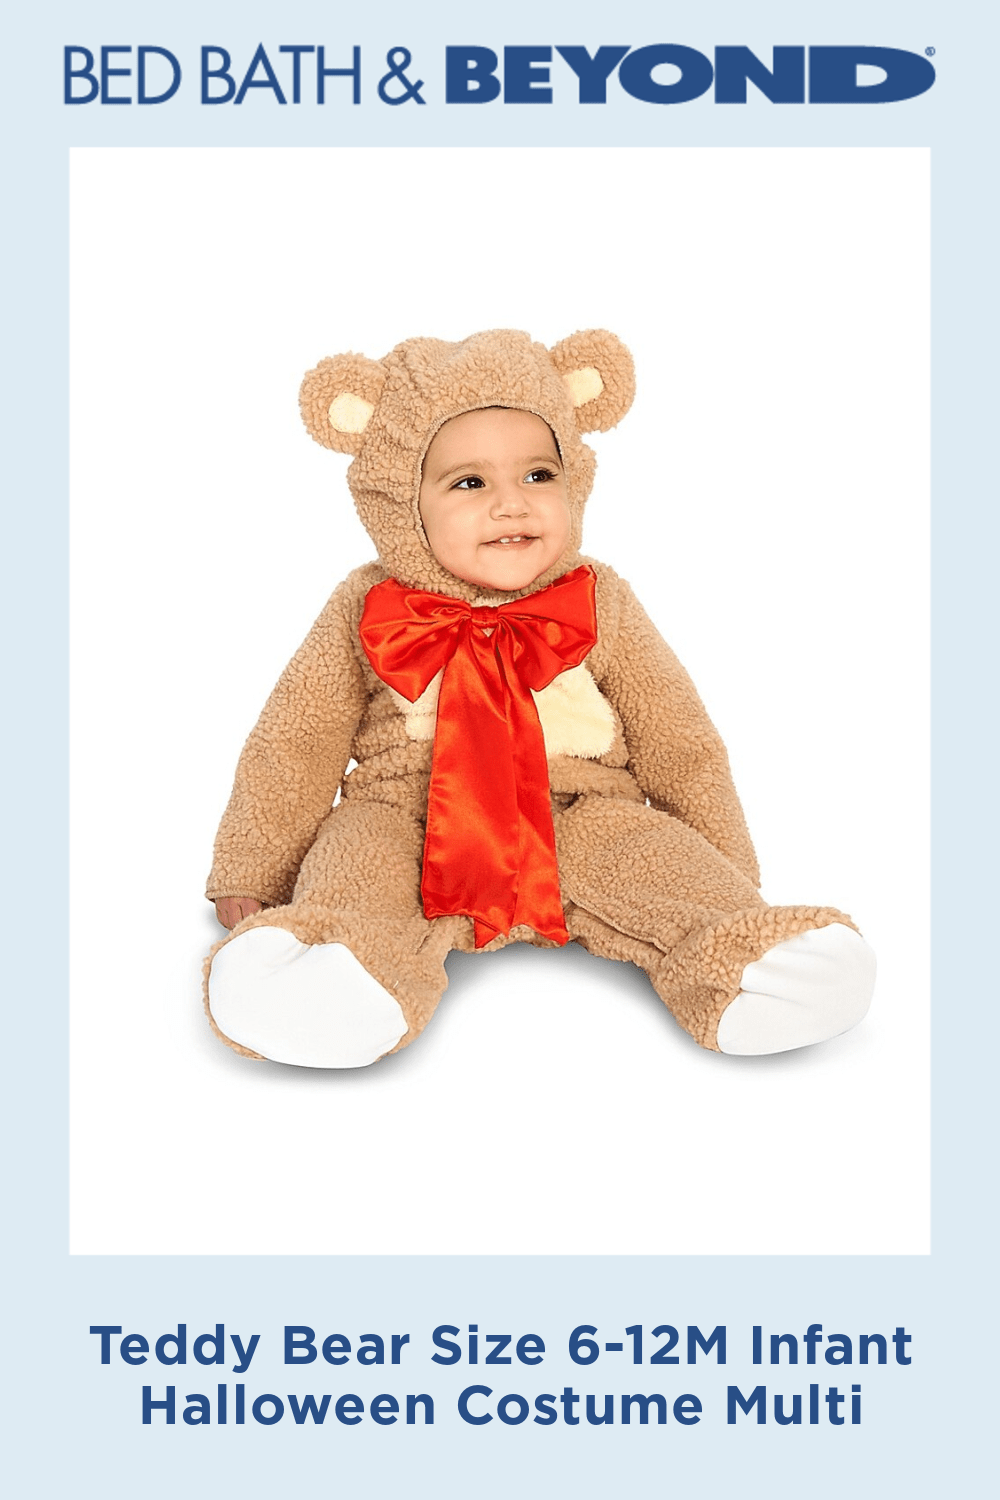 Teddy Bear Size 6-12M Infant Halloween Costume Multi